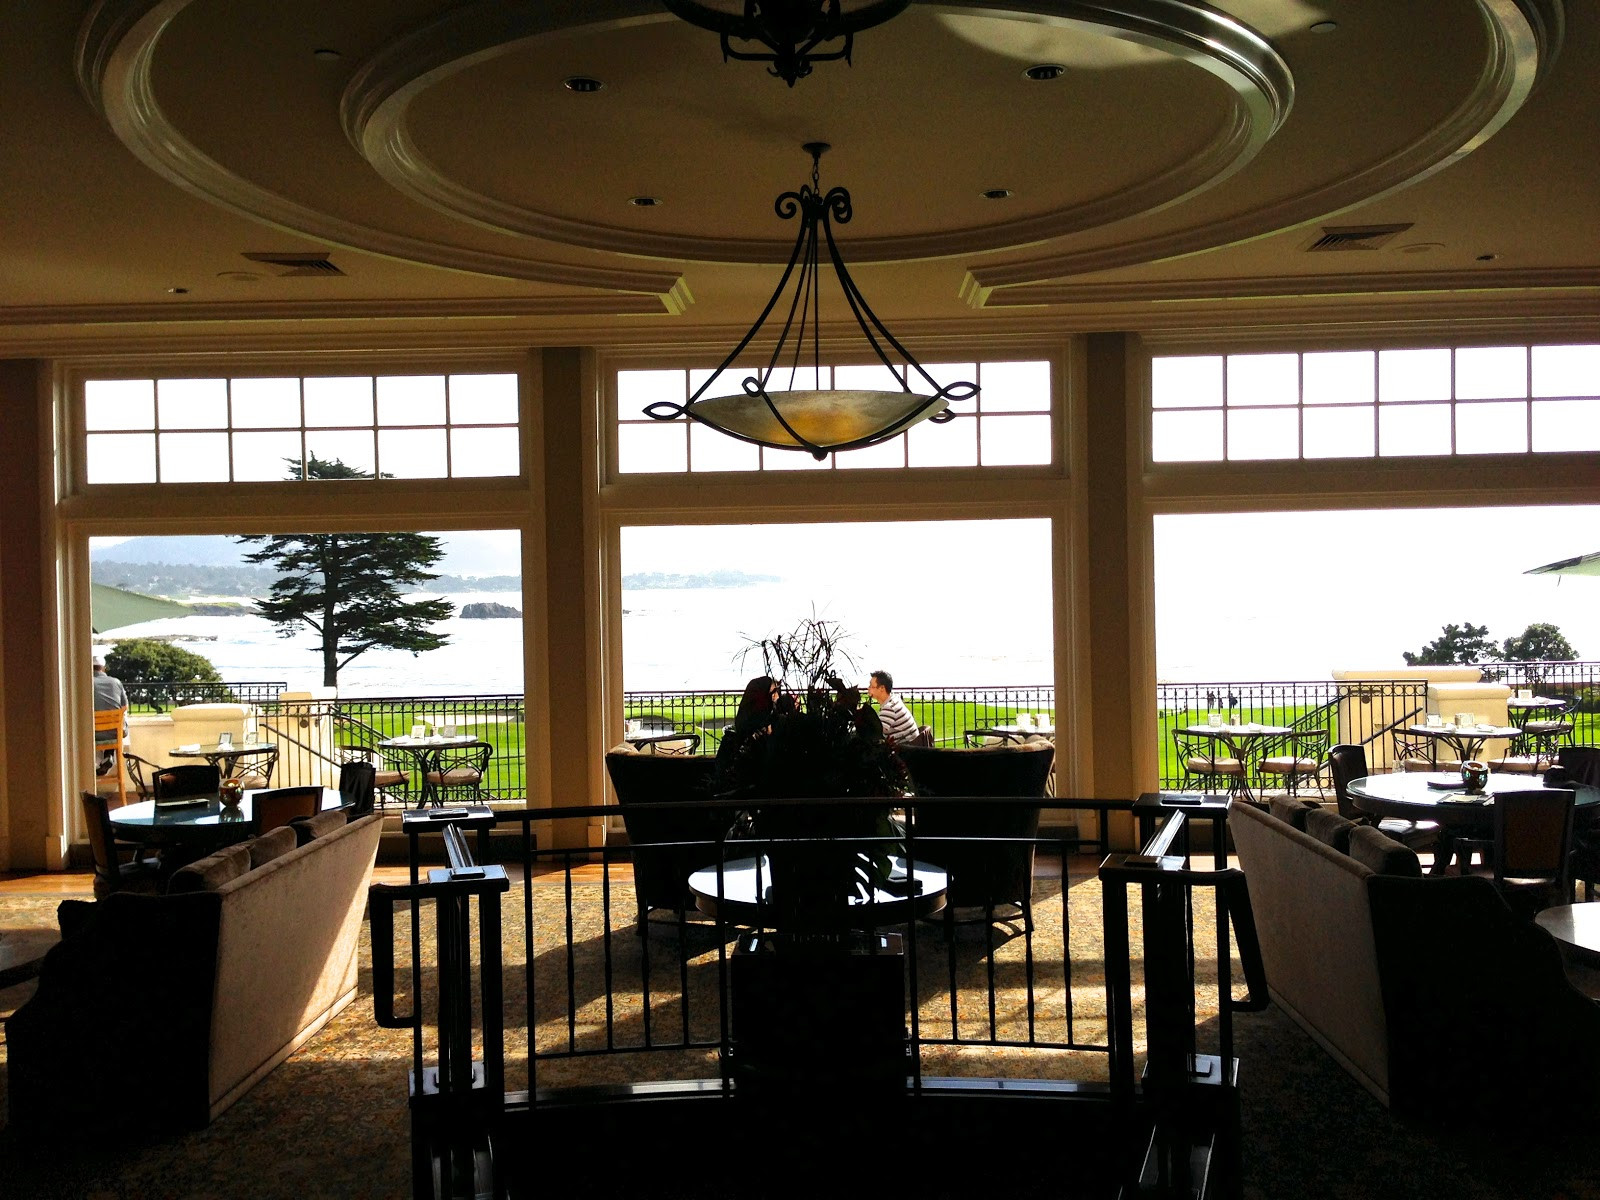 ENTER THE LODGE AND YOU ARE IN BEAUTIFUL LOBBY OVER LOOKING THE 18TH HOLE